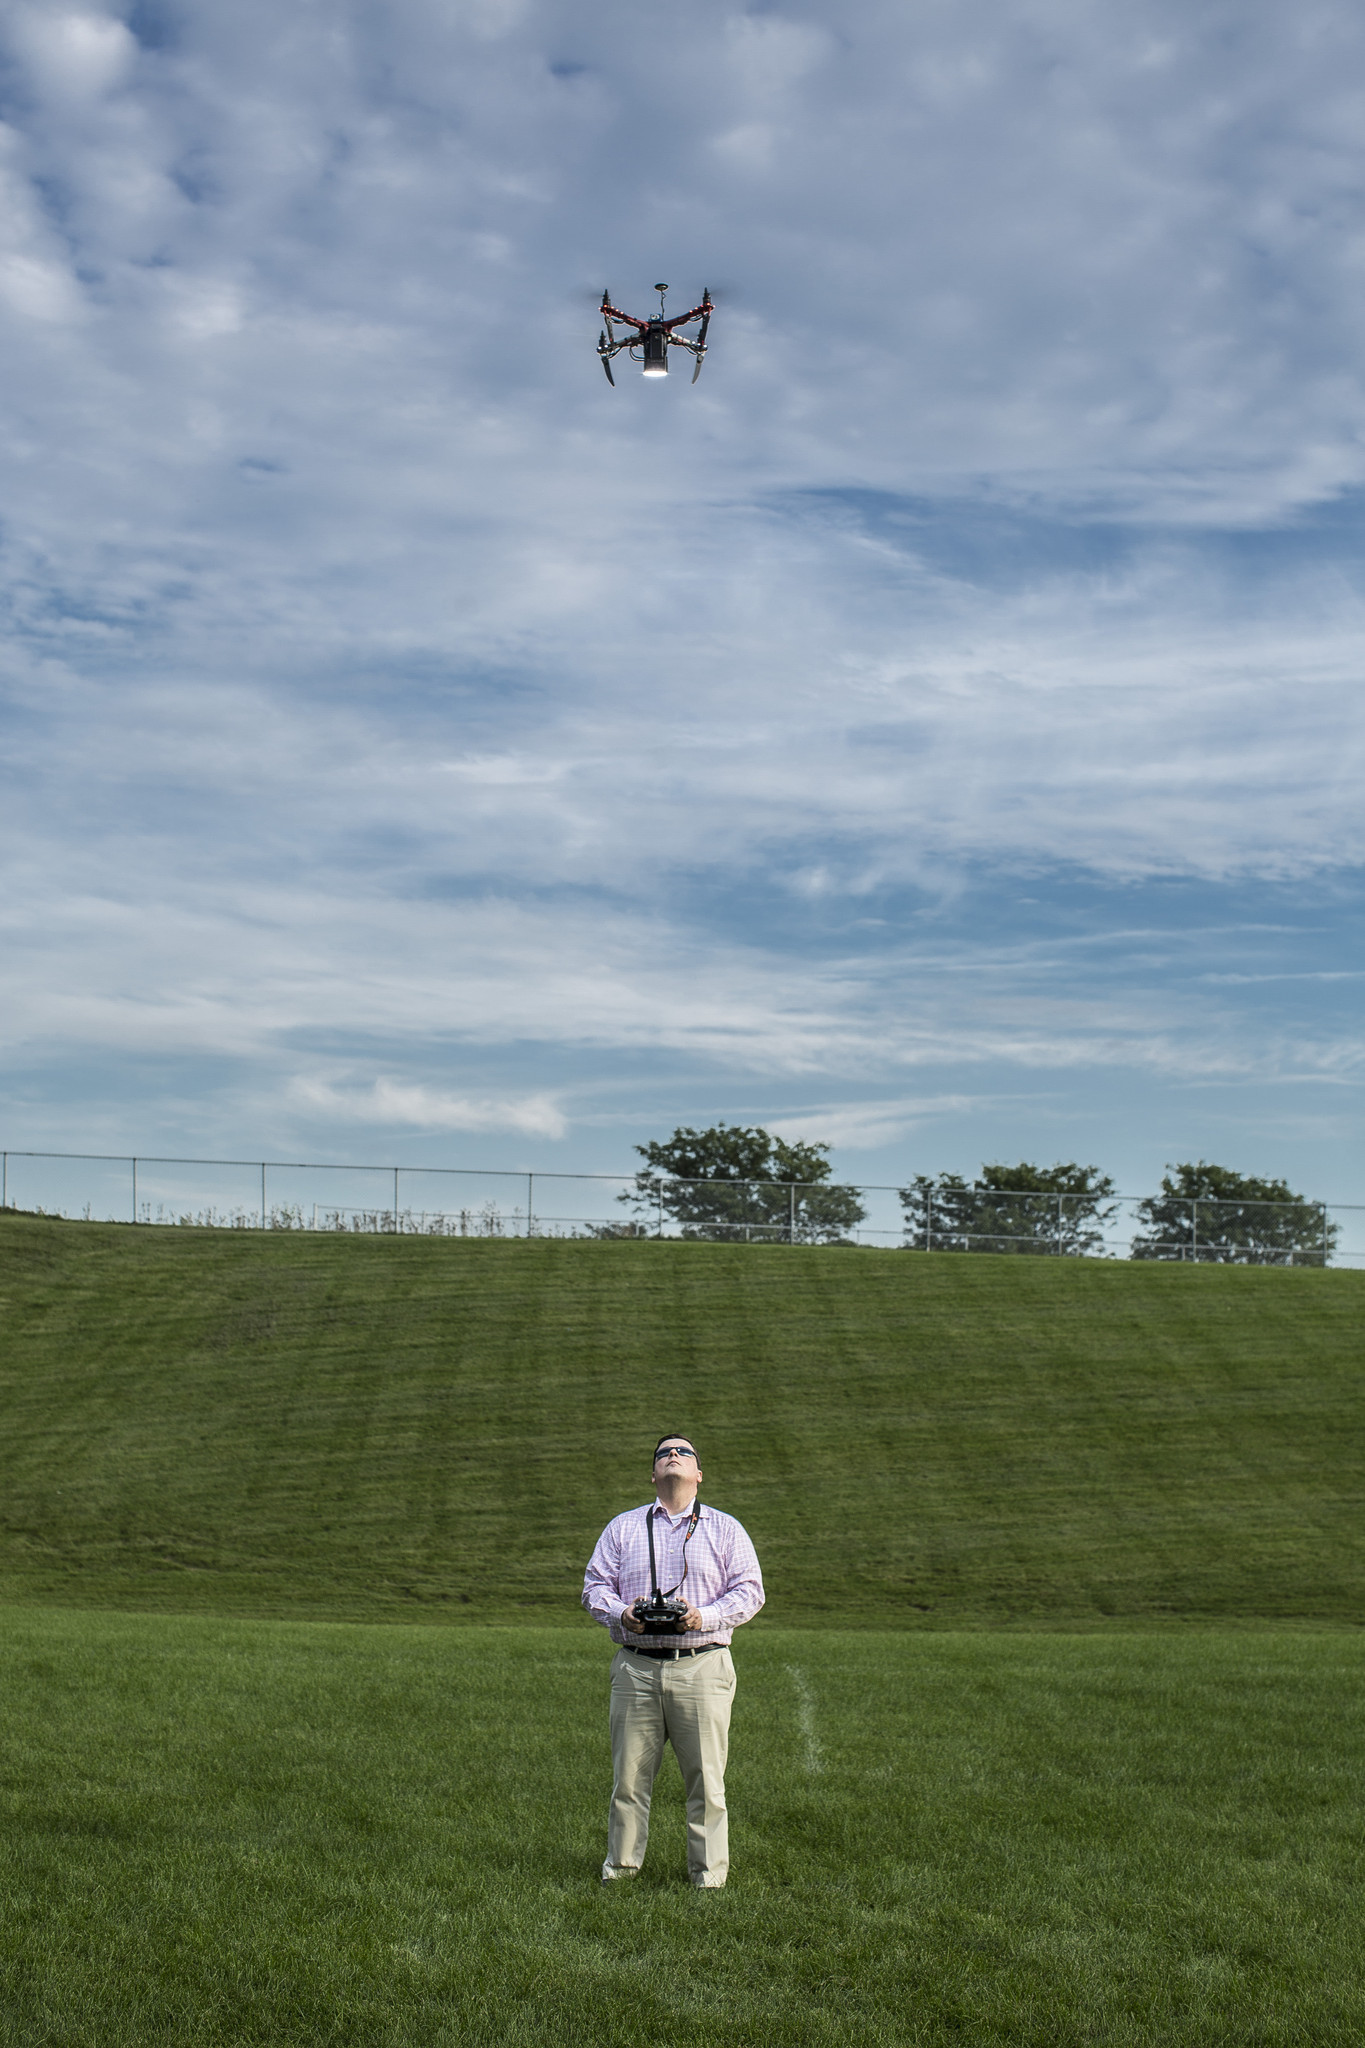 Smart rules needed to govern drone use: Editorial ...